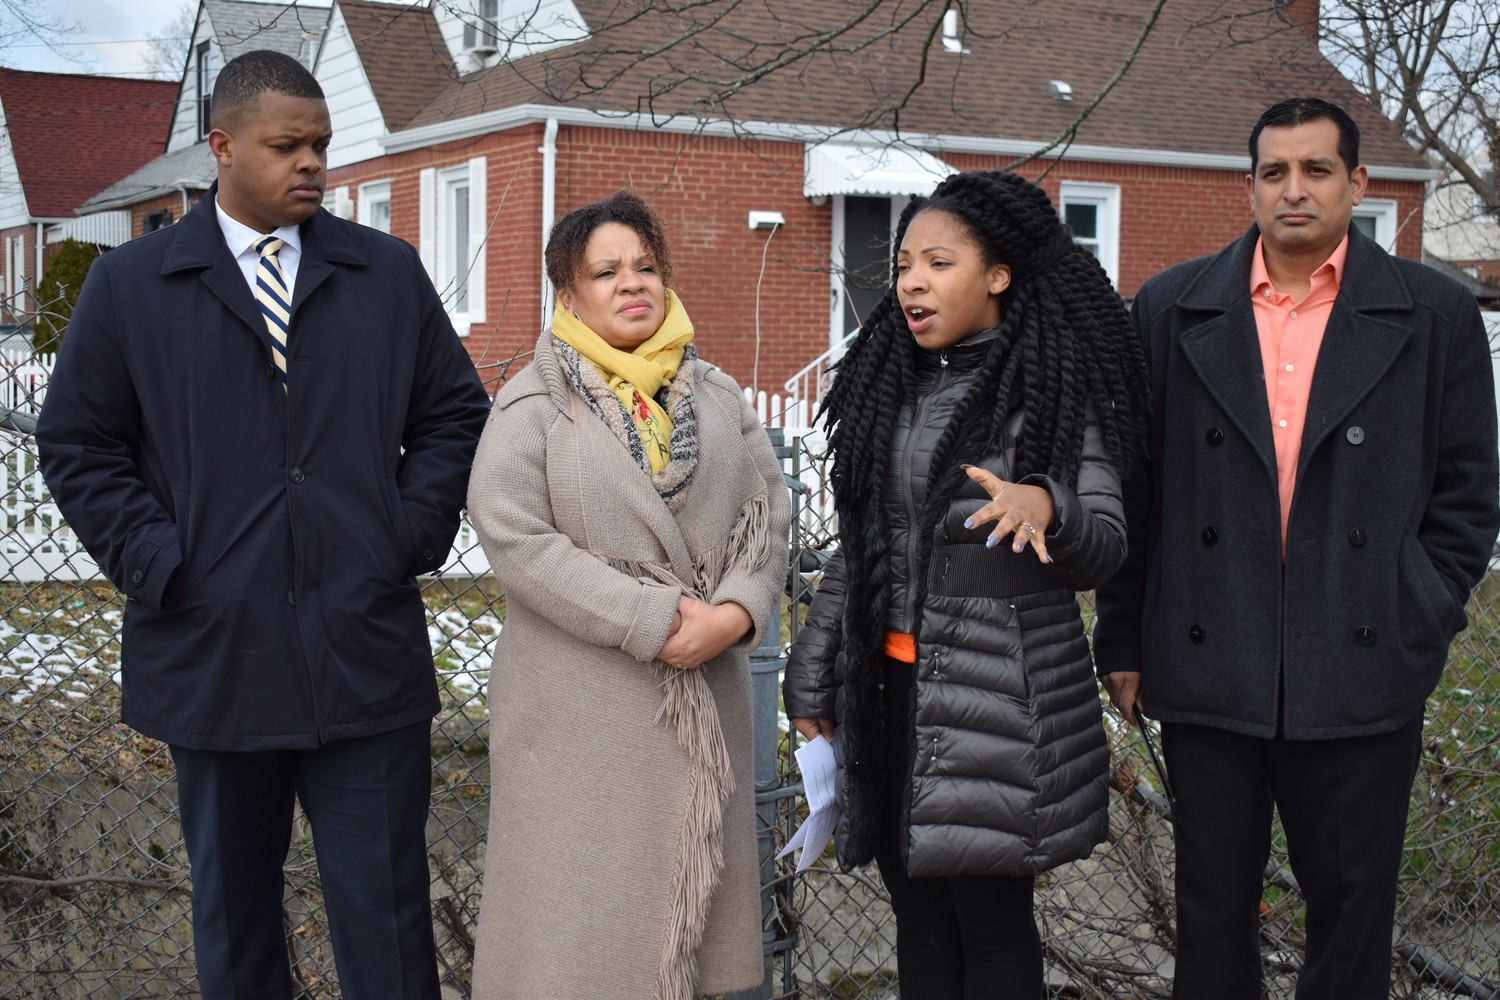 Community activists by the banks of Elmont Creek speak about cancer in their community. (Left to right) Congressional candidate Carl Achille, and activists Mimi Pierre-Johnson, Tamar Paoli and Victor Perez.